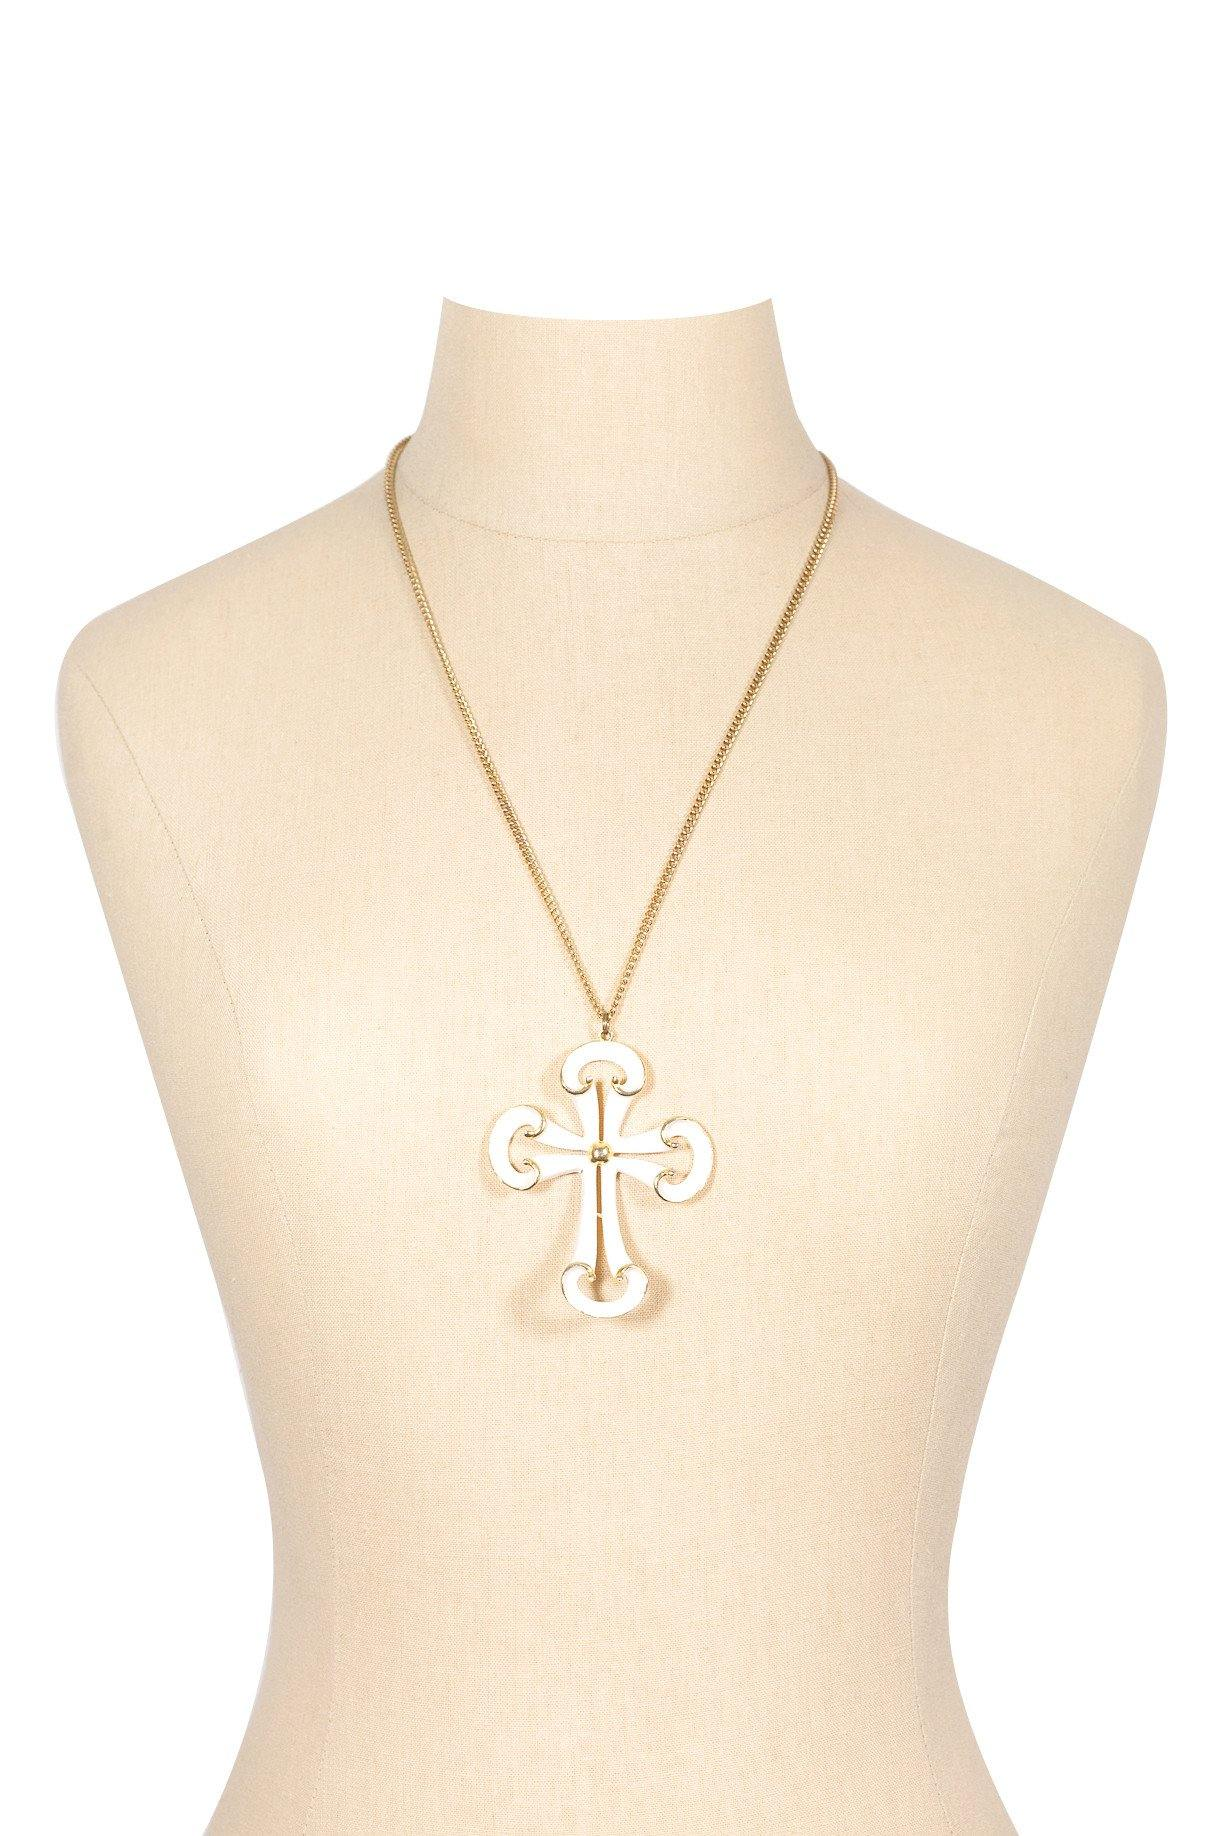 70's__Vintage__Cross Pendant Necklace